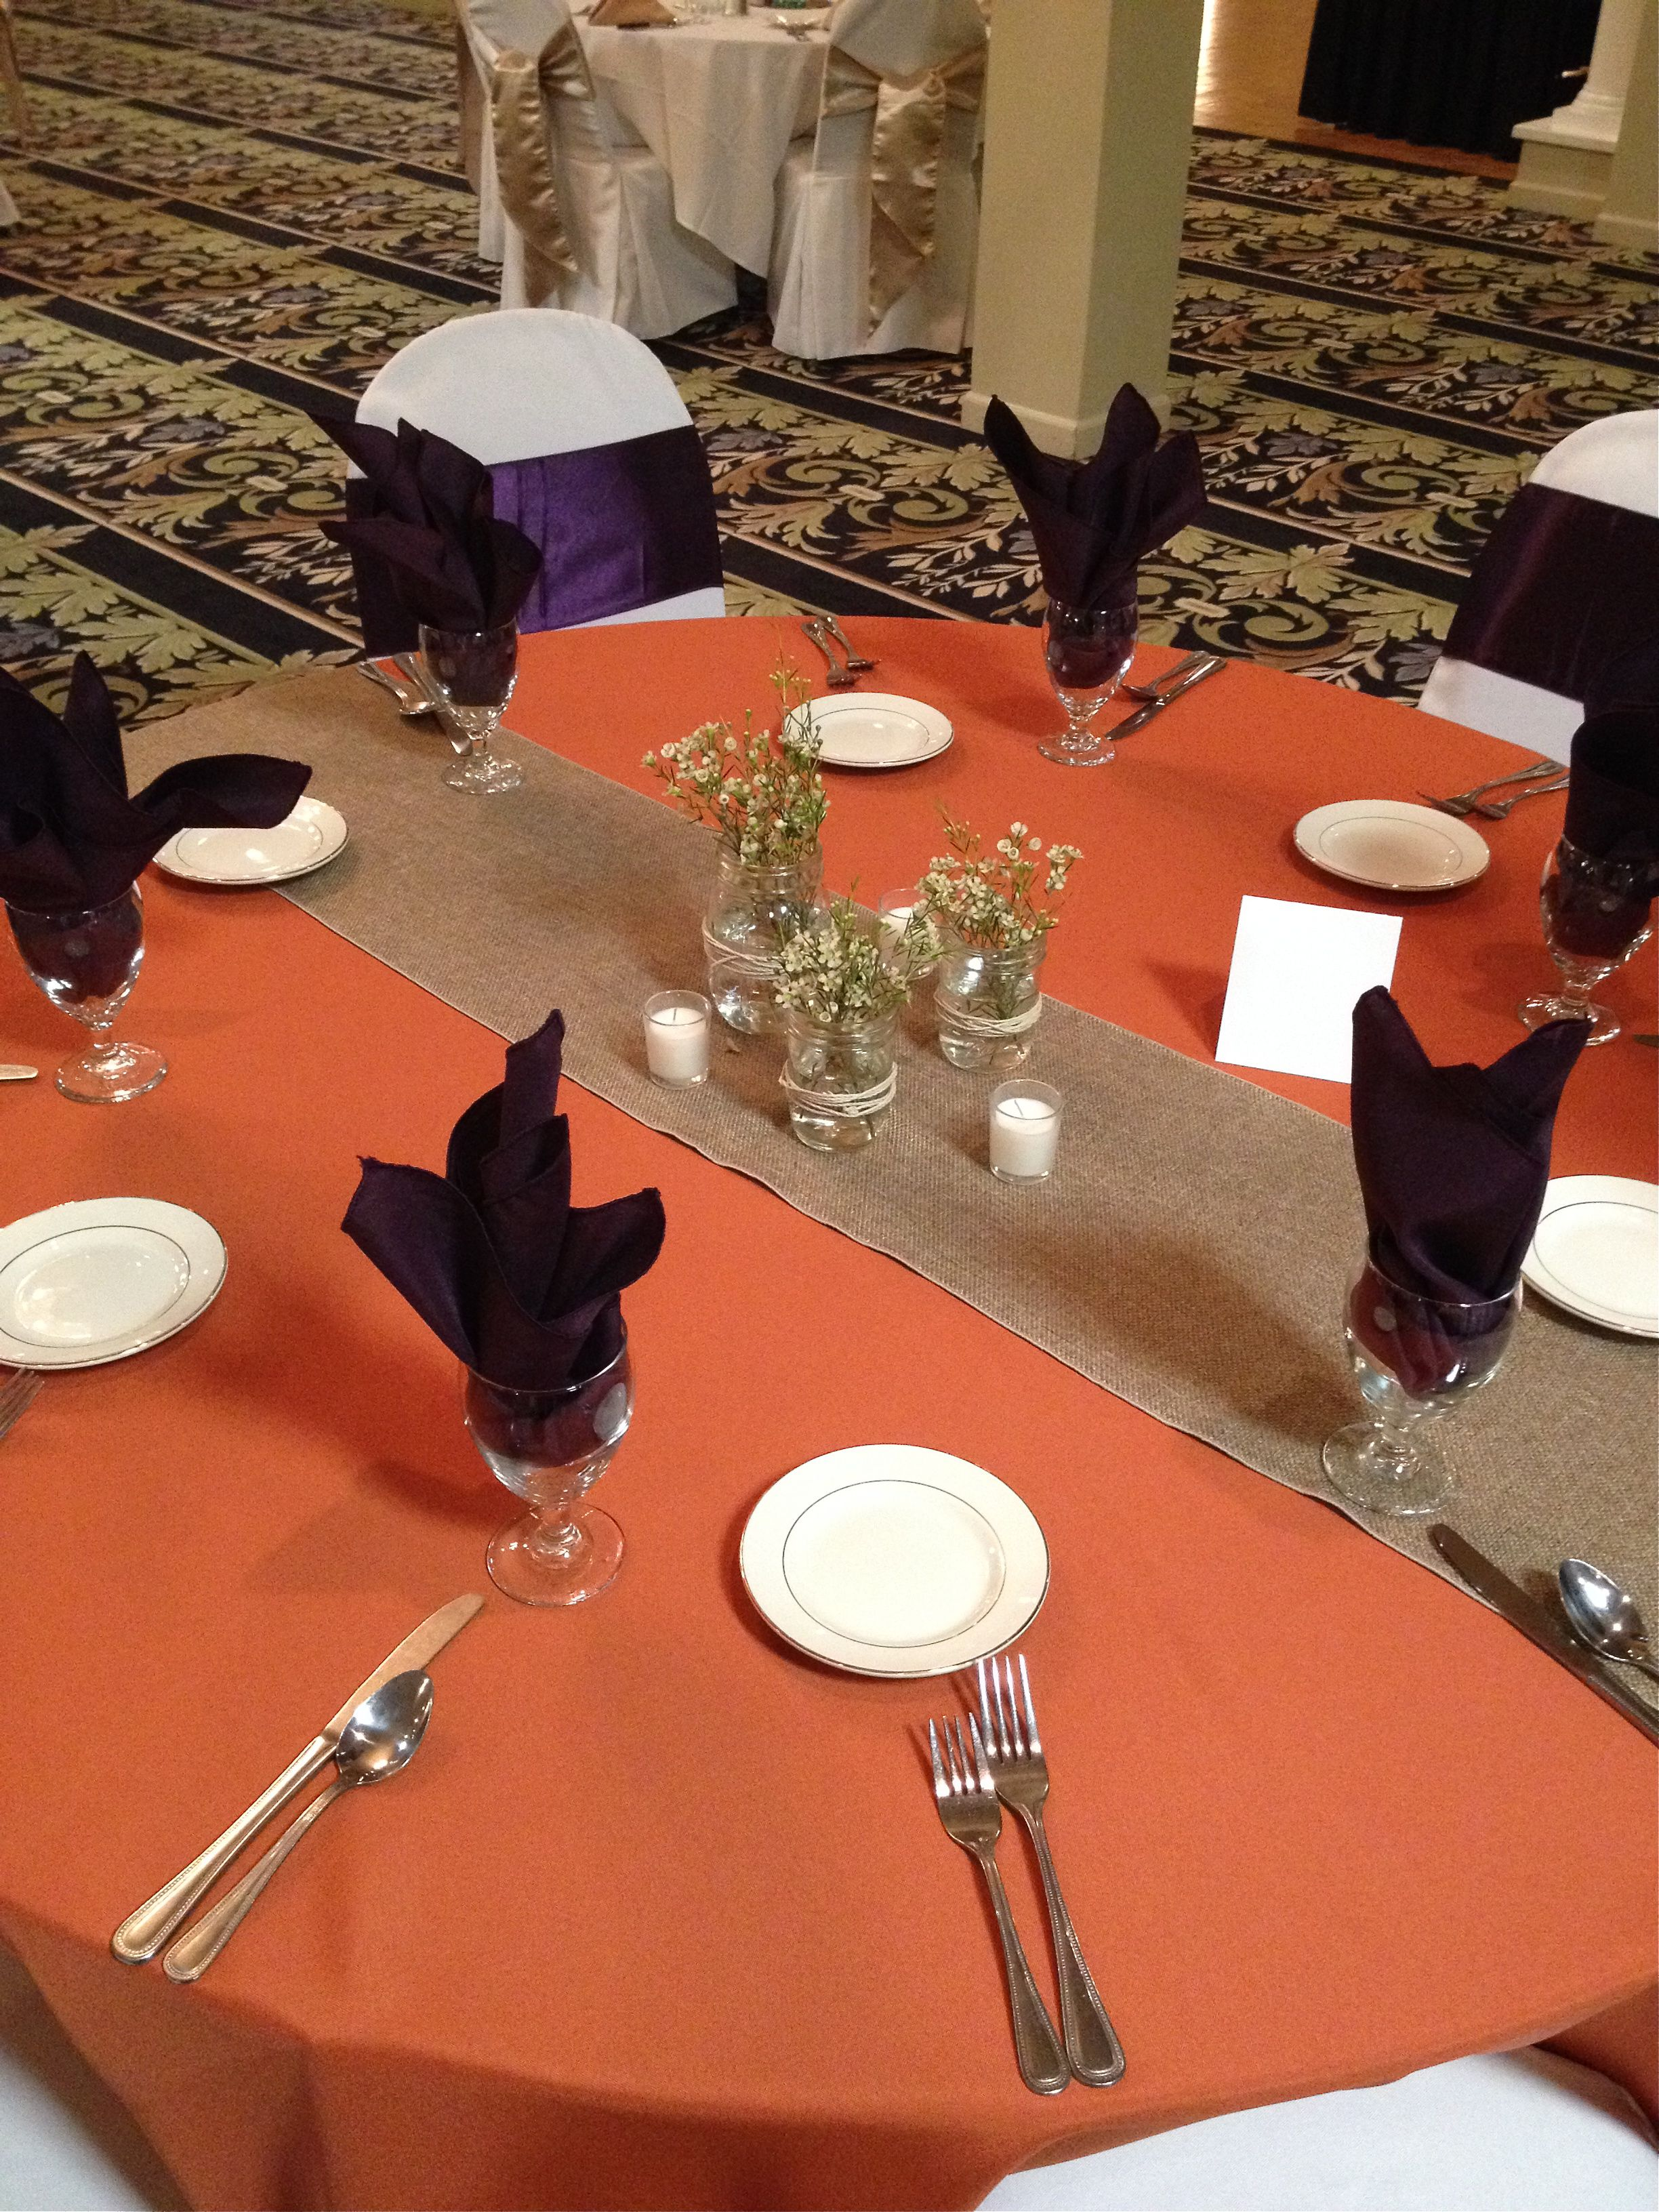 Wonderful Burnt Orange Table Cloth With Burlap Runner And Plum Napkins In The Glasses.